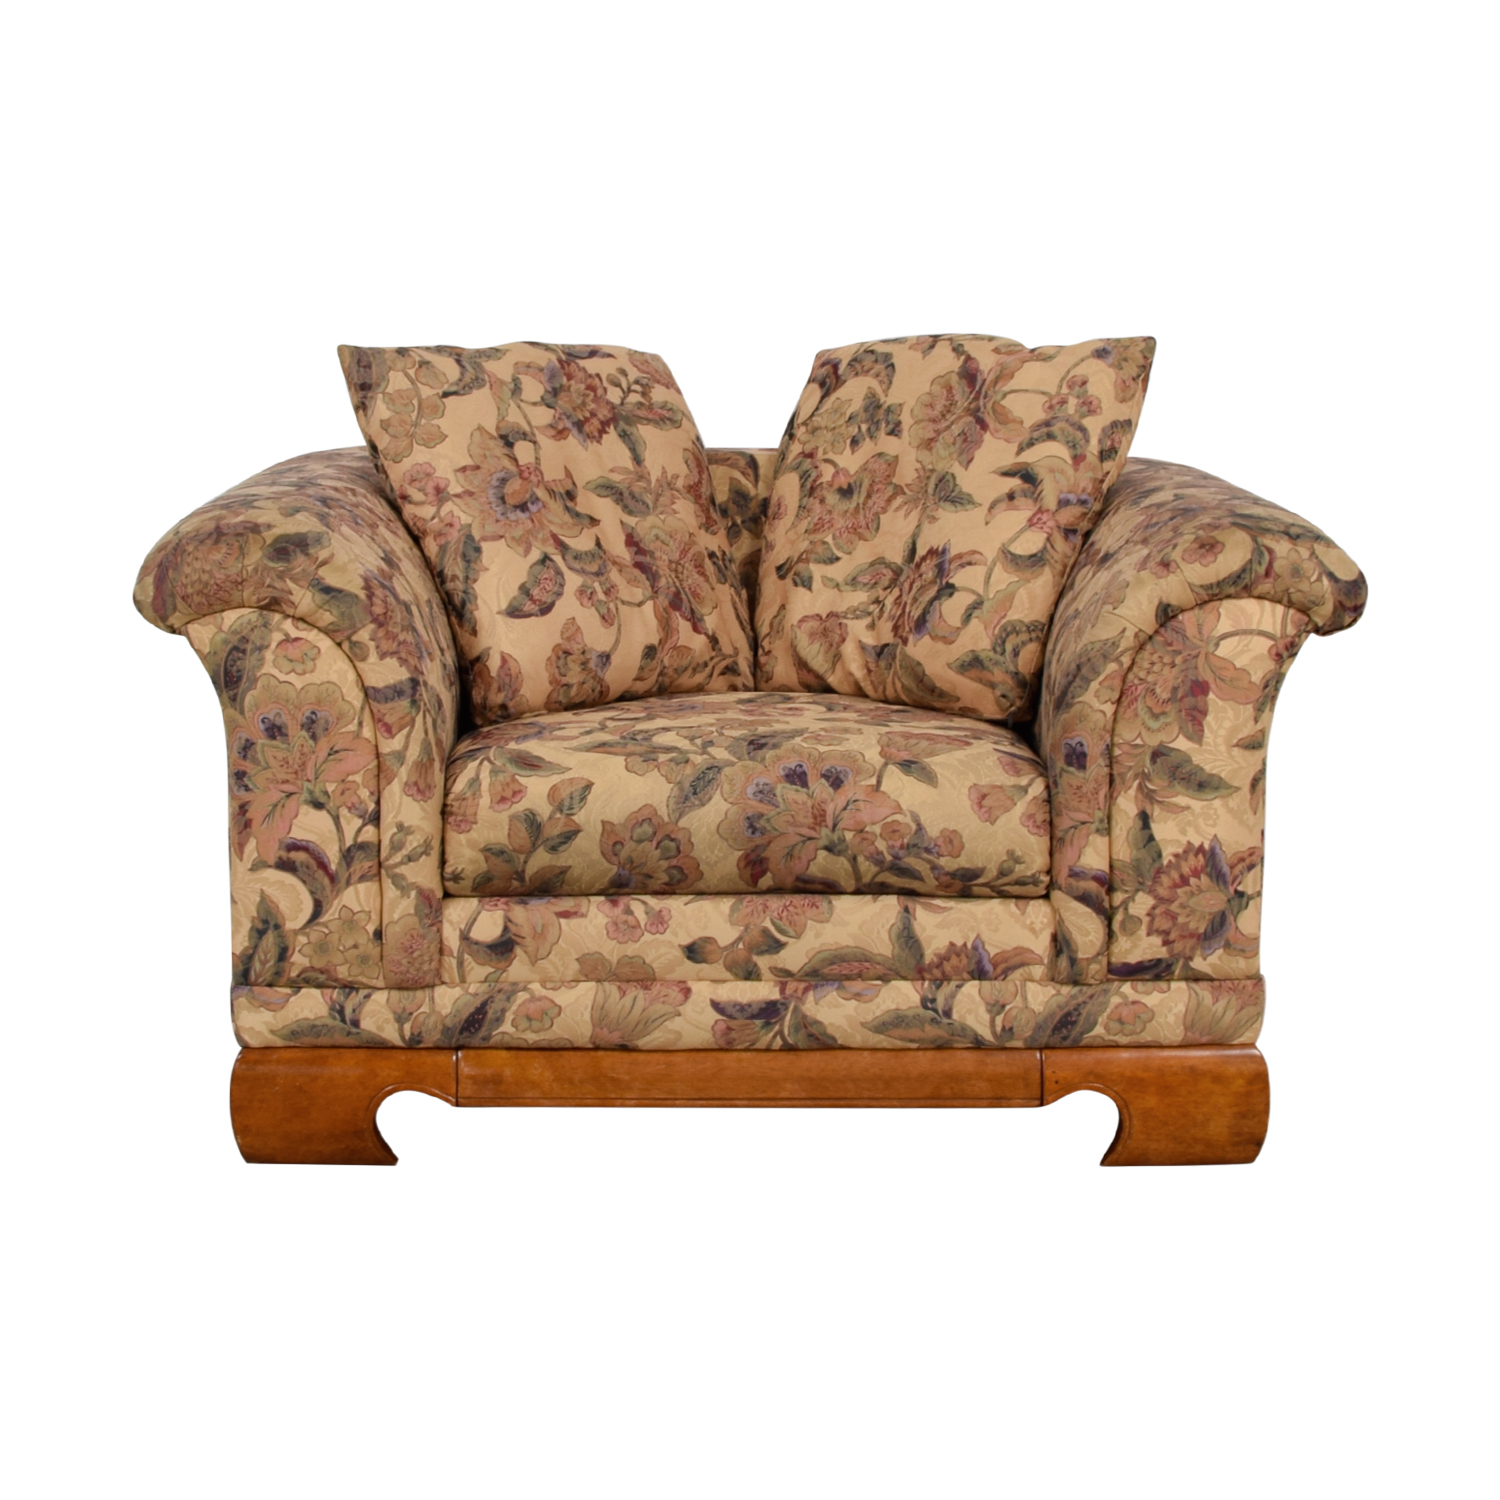 floral print accent chairs hanging chair swivel hook 90 off sealy furniture price